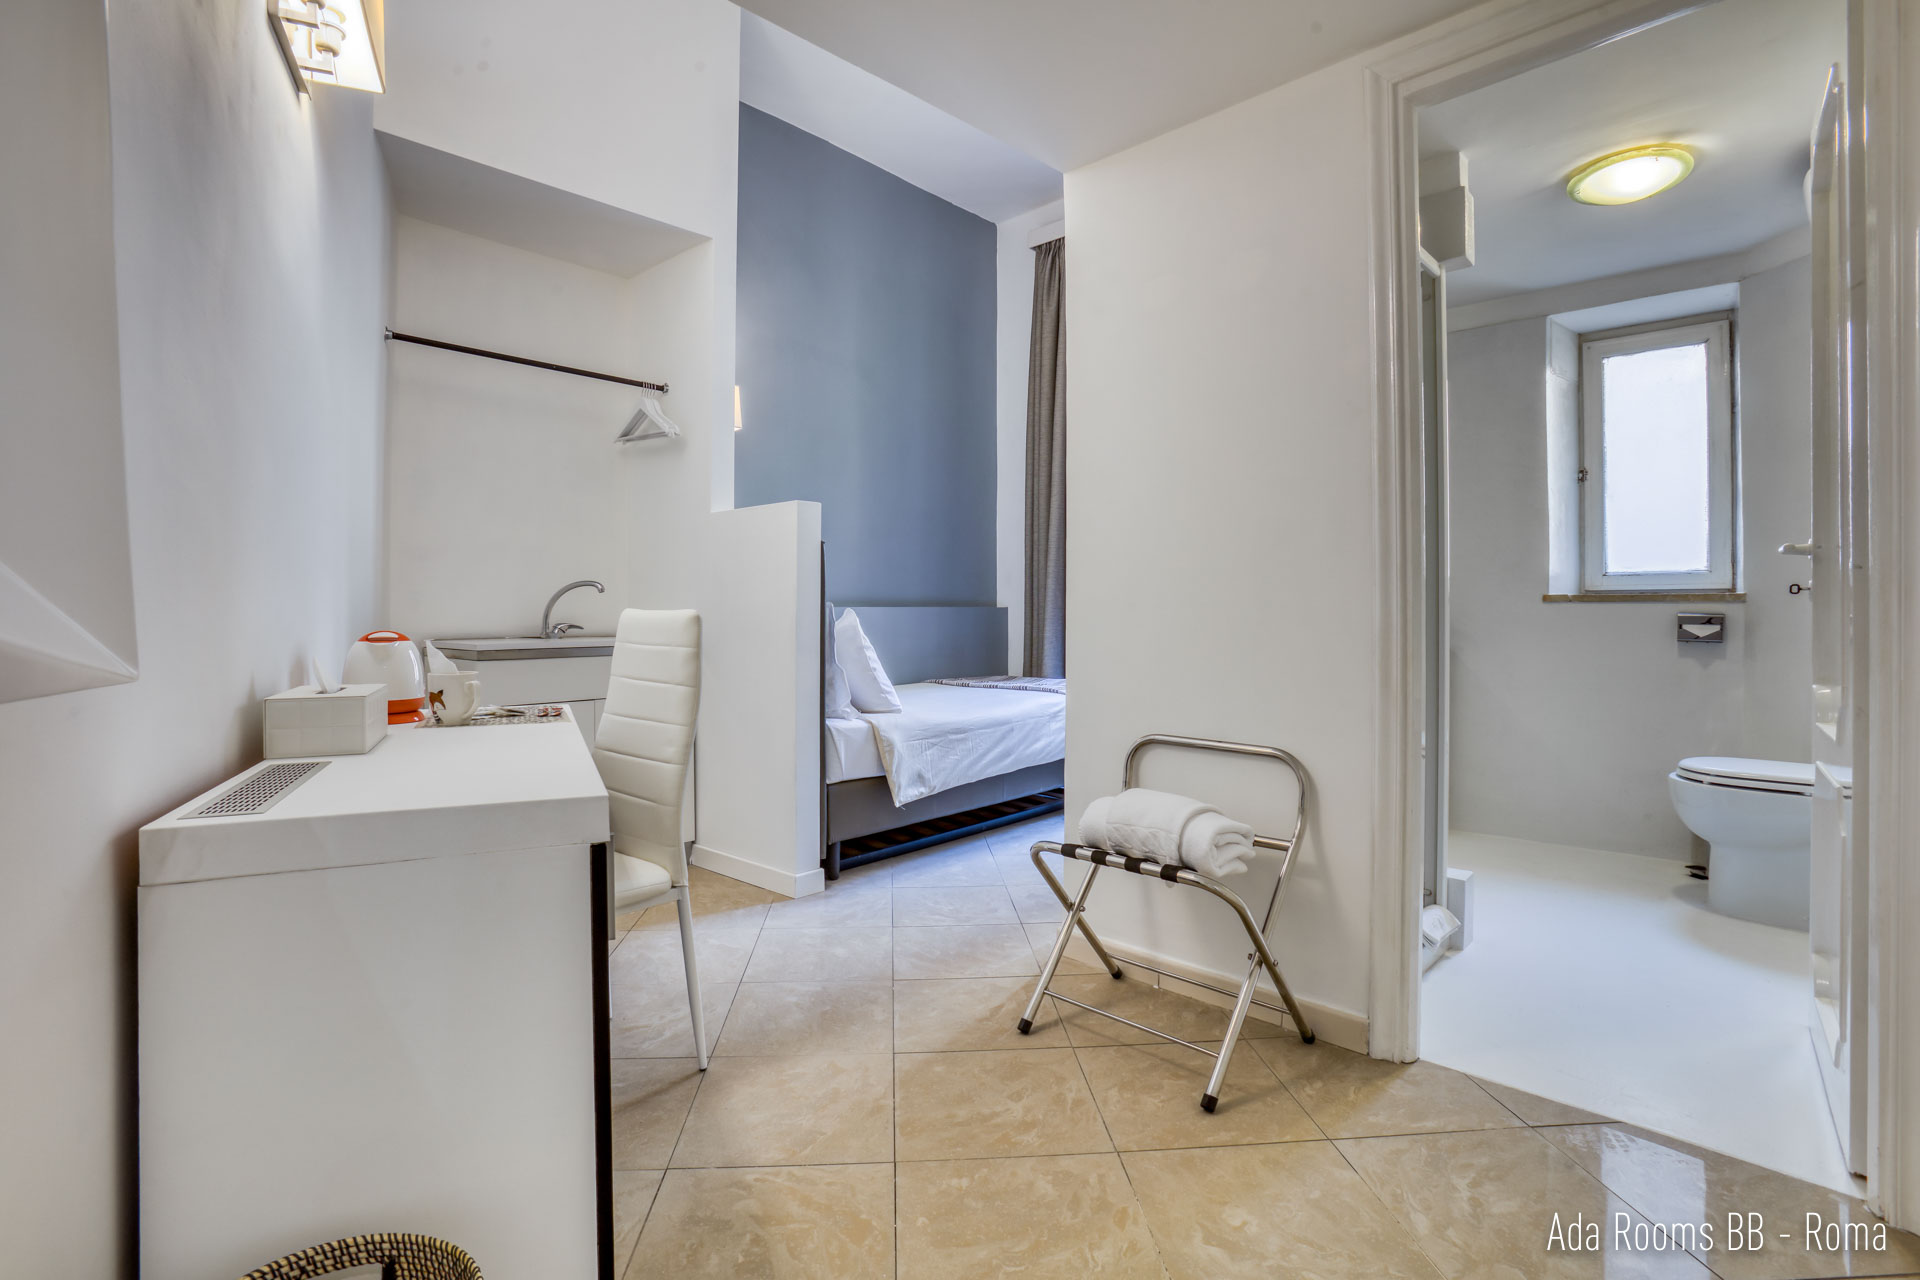 ada-rooms-roma-22